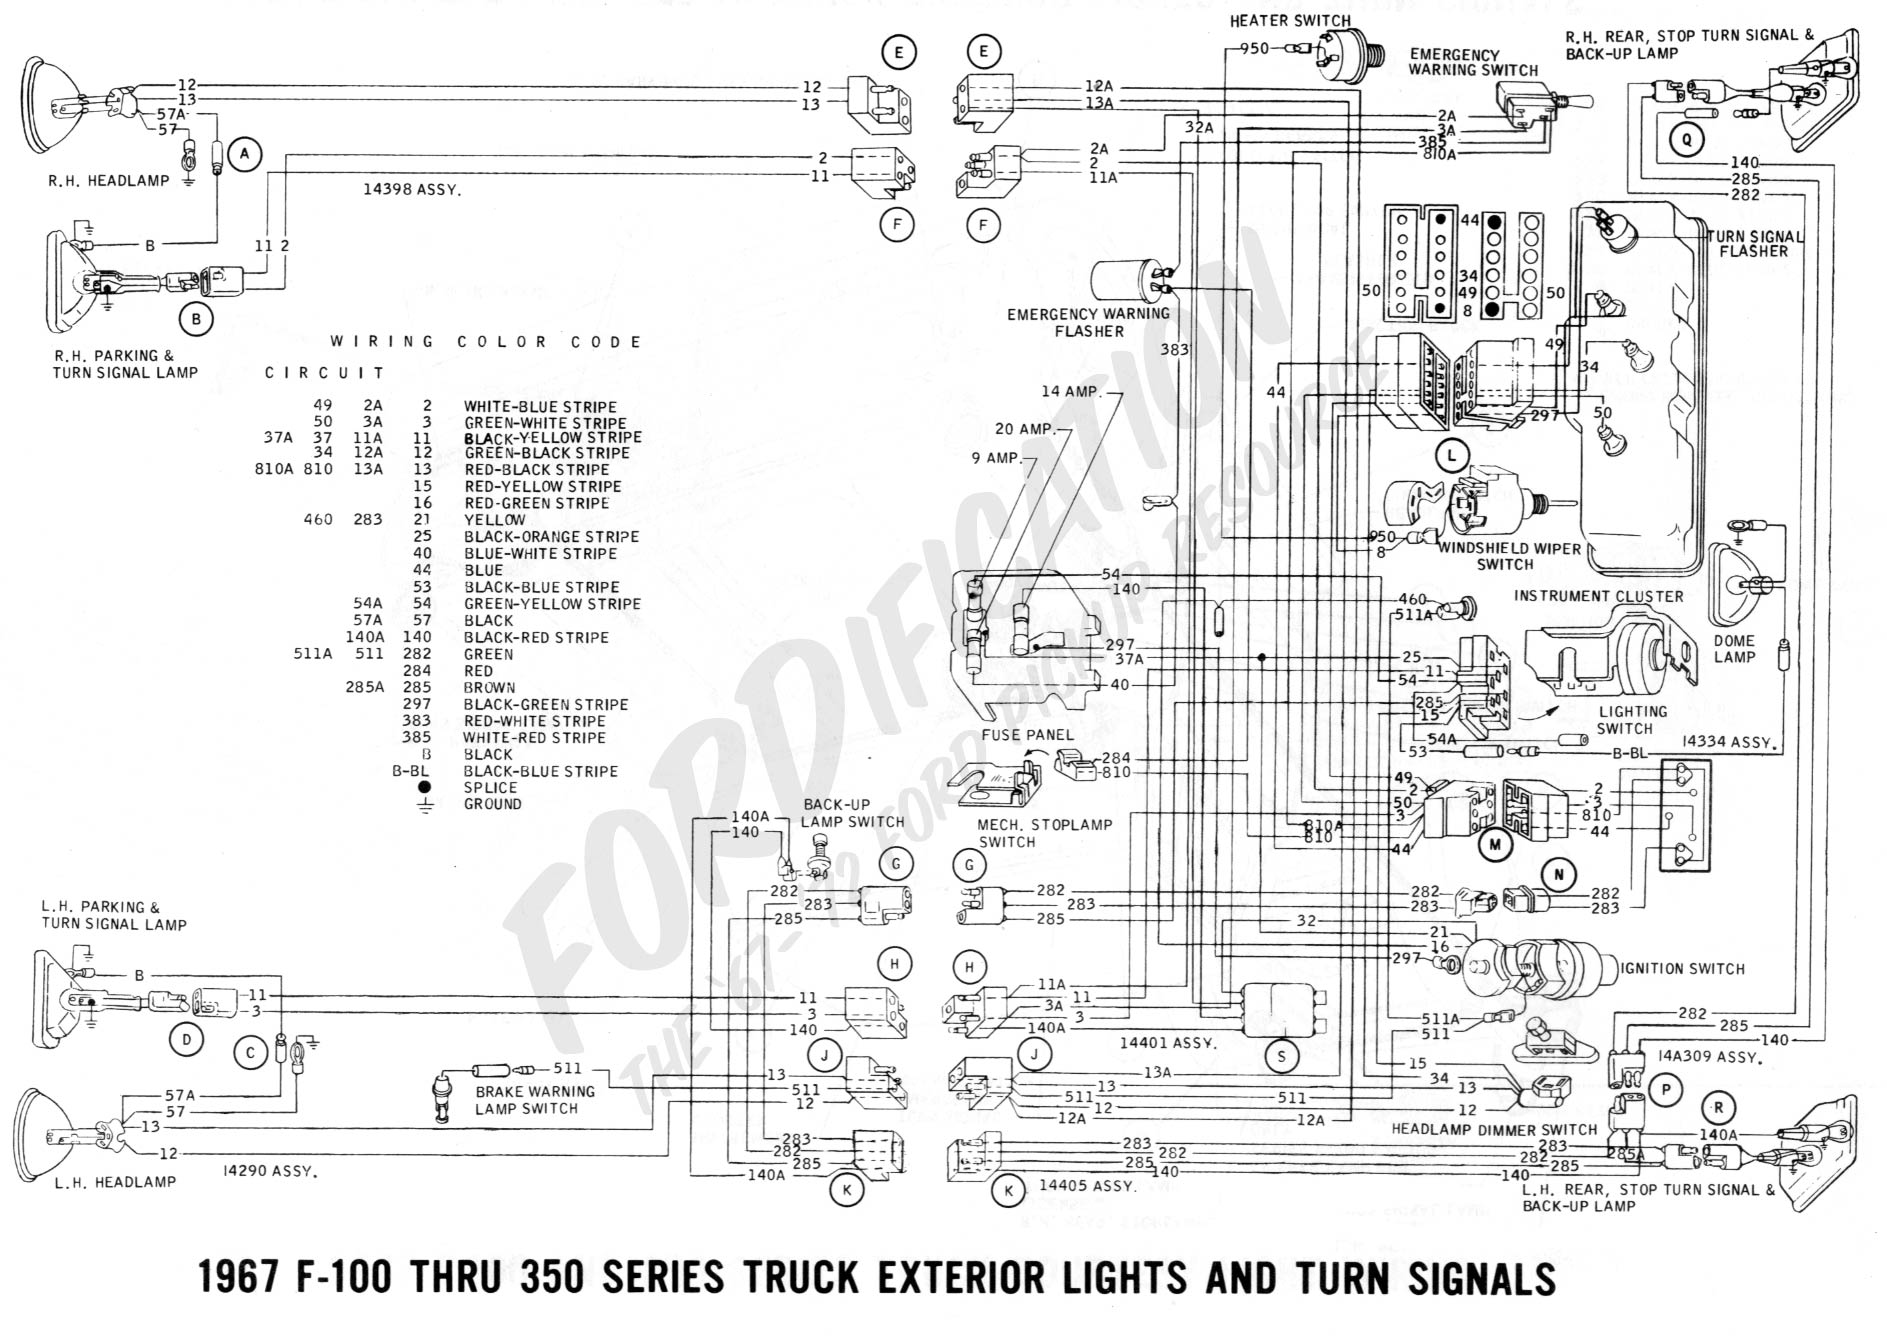 2011 f550 wiring schematic wiring diagram database rh 4 enfalixe cafe alte feuerwehr de 2011 ford f150 wiring diagram 2011 ford explorer wiring diagram